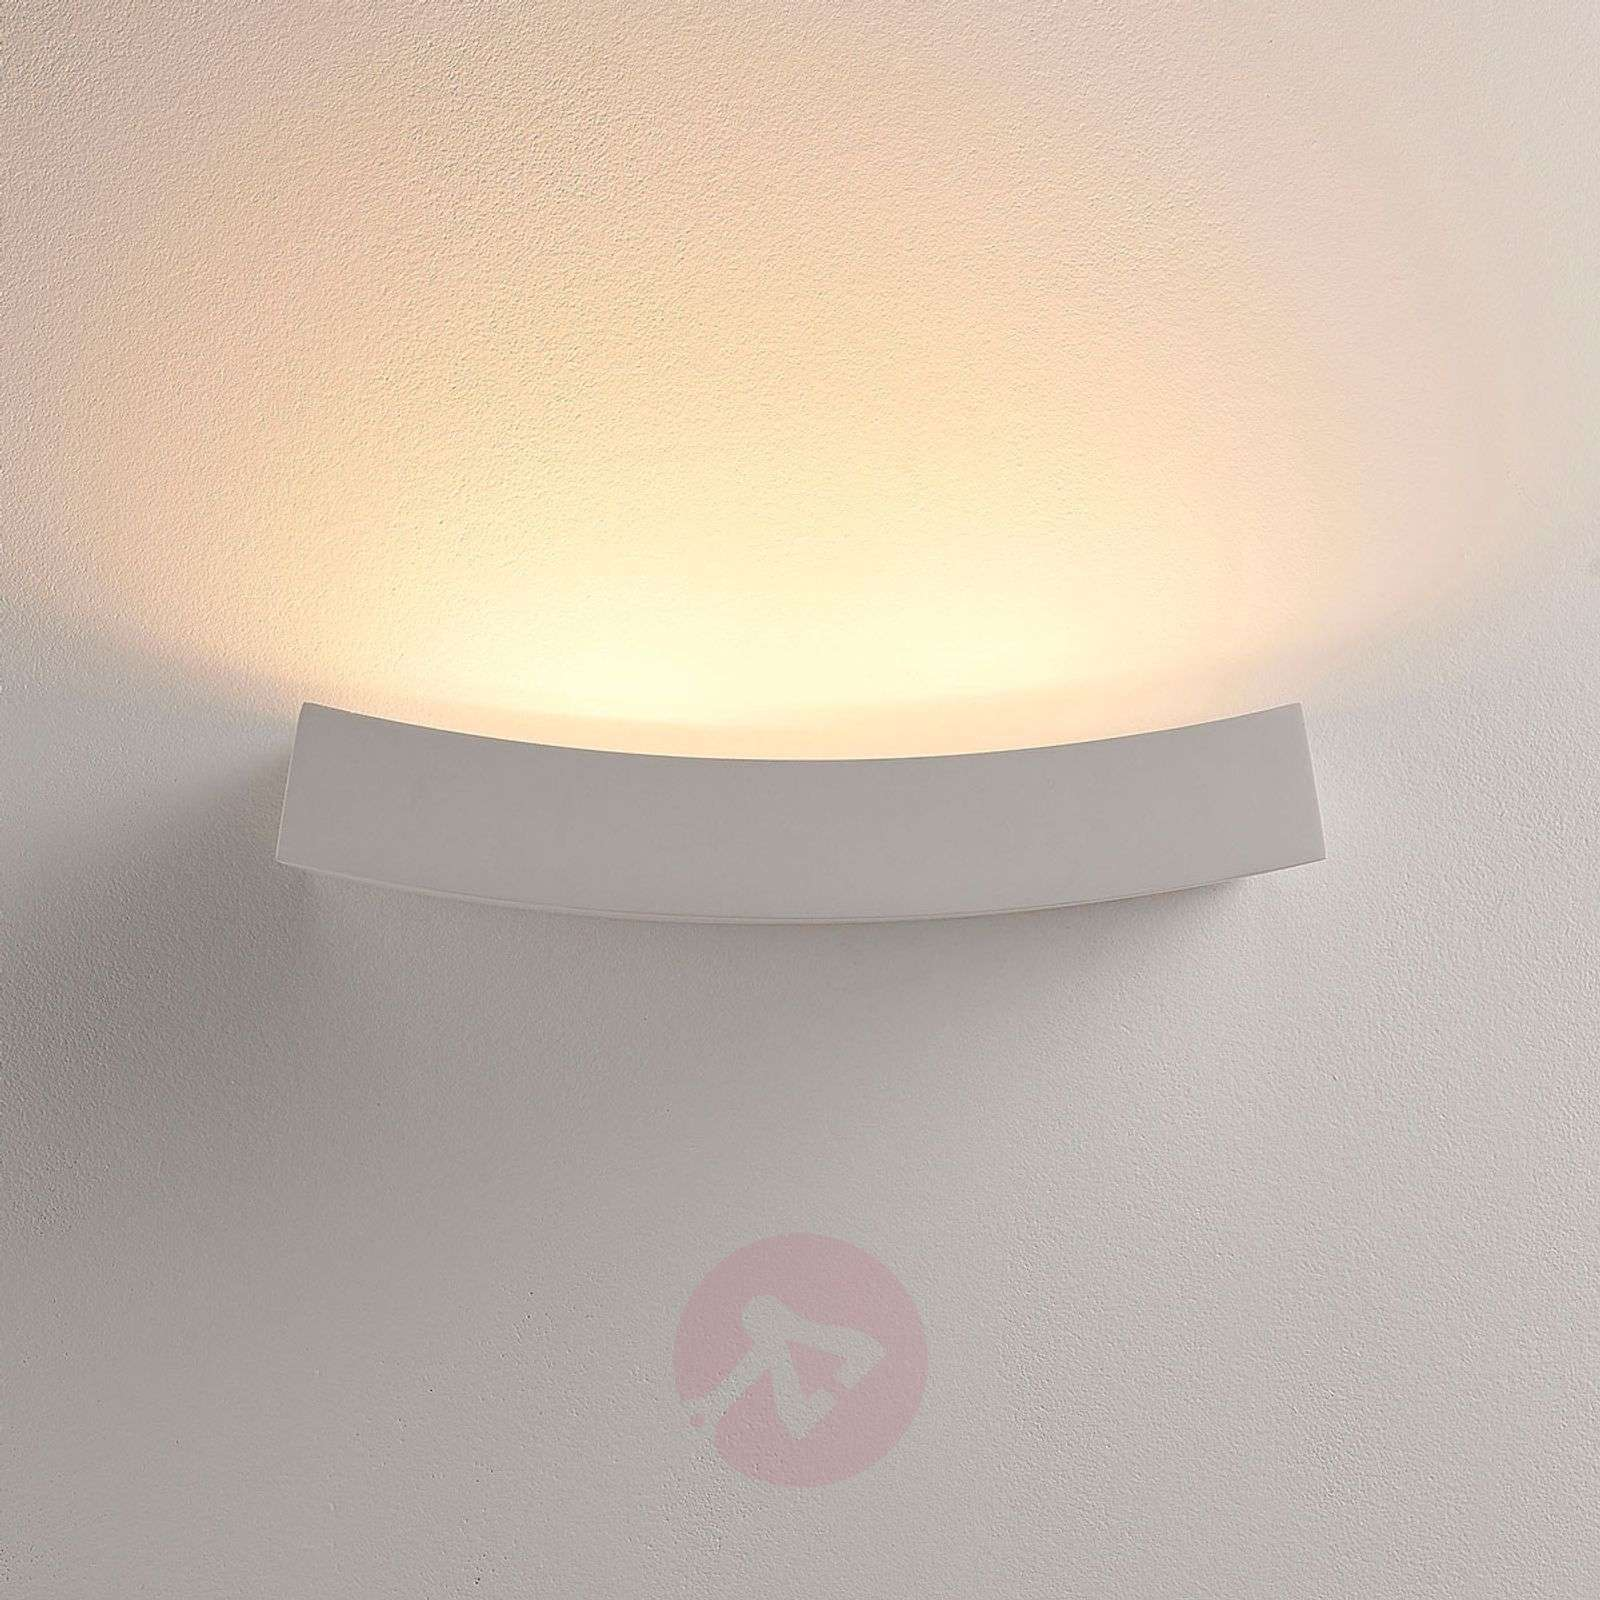 Wallwasher LED G9 Tiara di gesso, dimmerabile-9621318-011